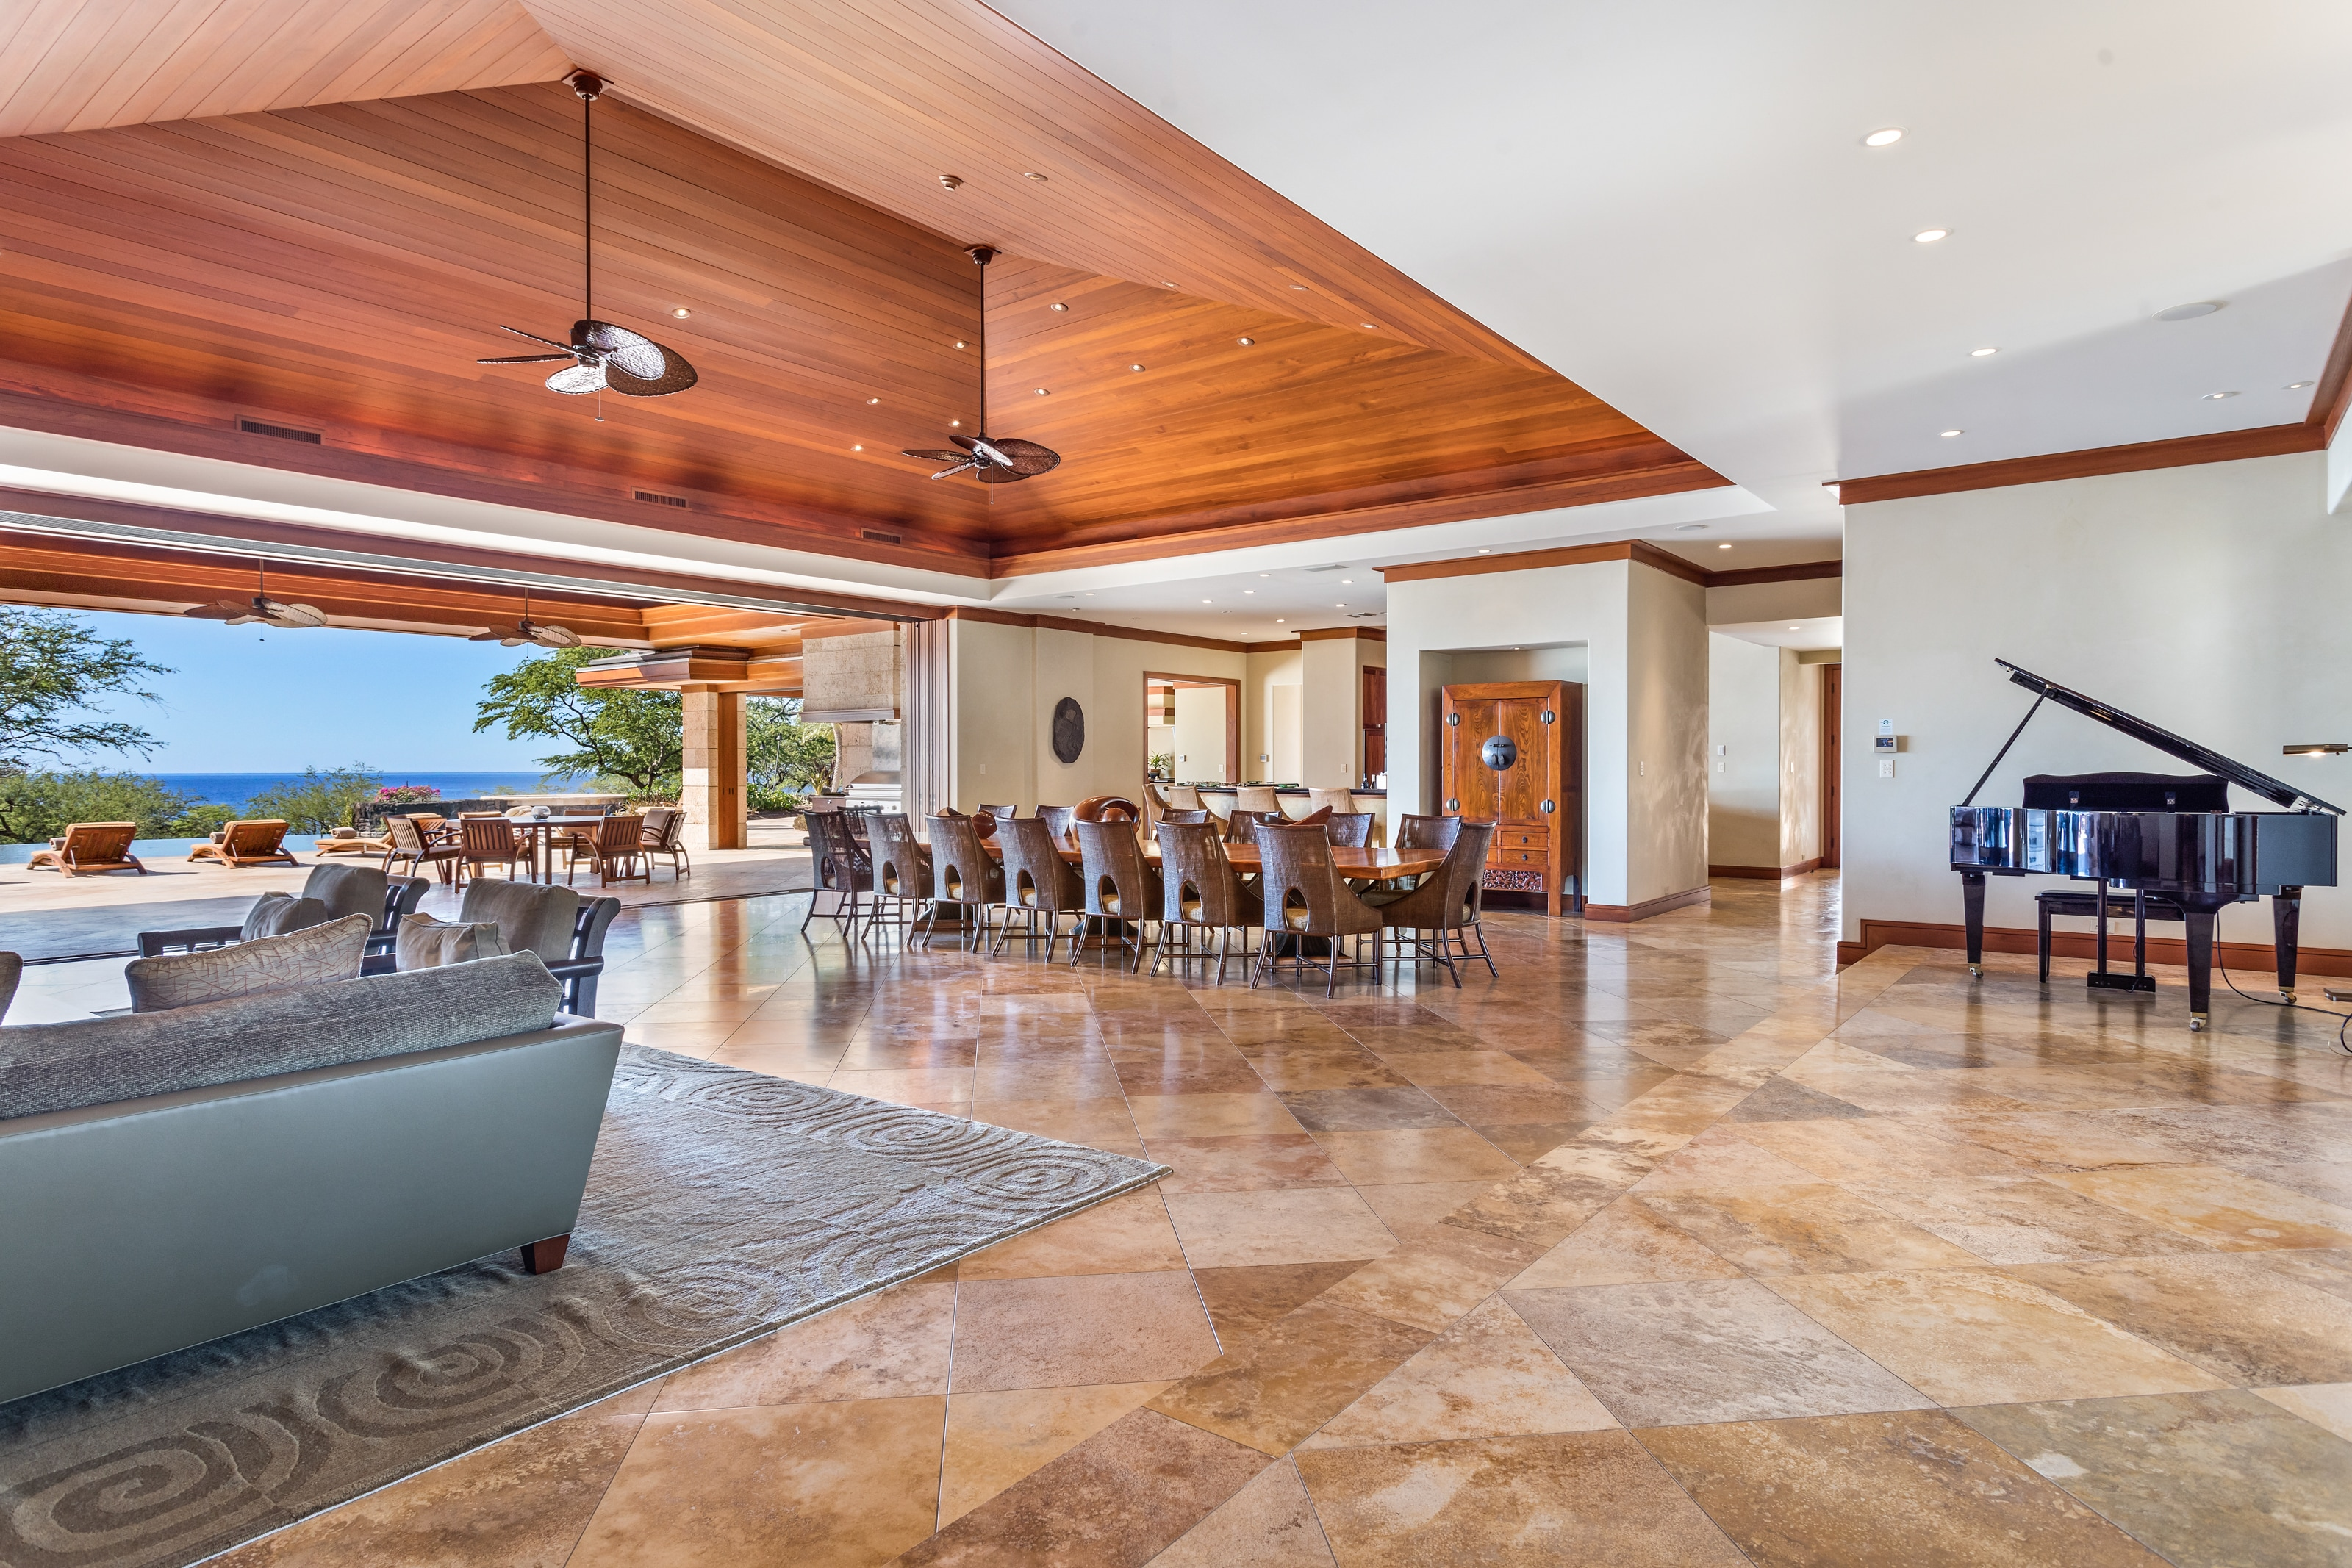 7-Bedroom Oceanfront Estate with Dual Master Suites, Home Theater, Pool, and Lanai